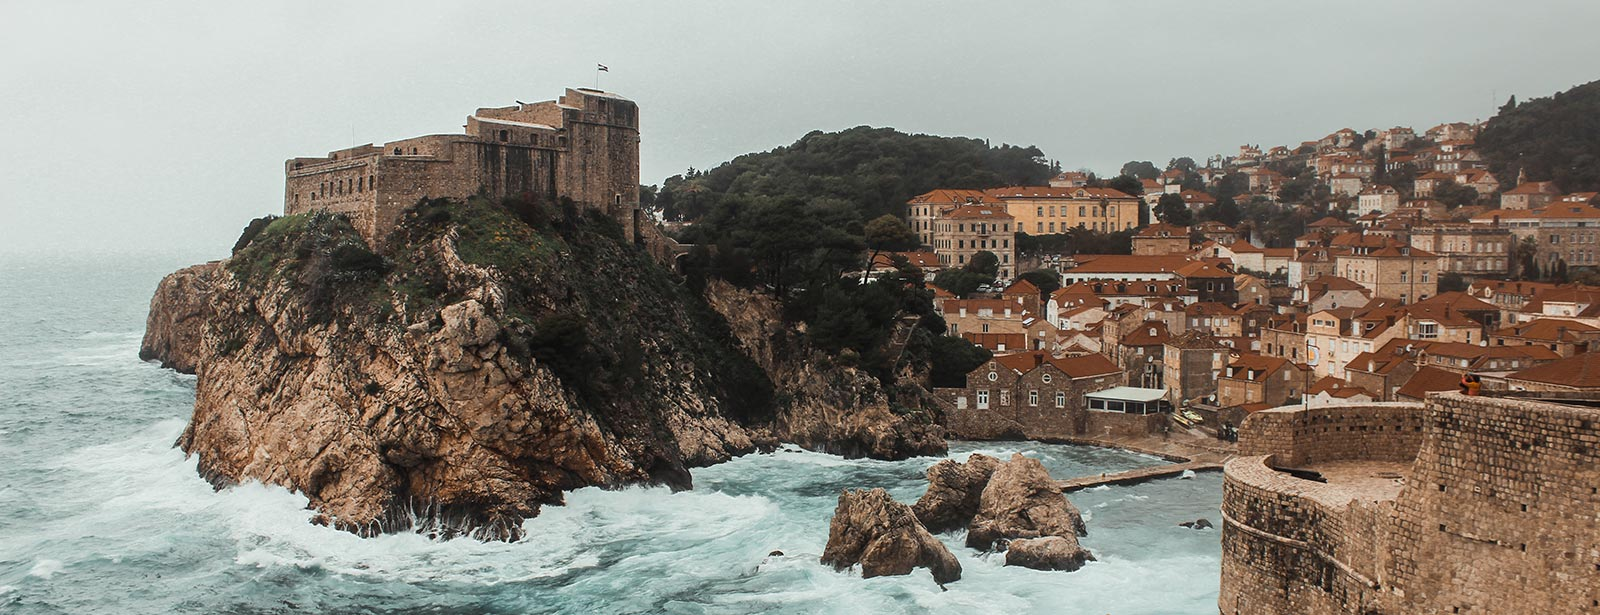 10-game-of-thrones-filming-location-you-cant-miss-hero